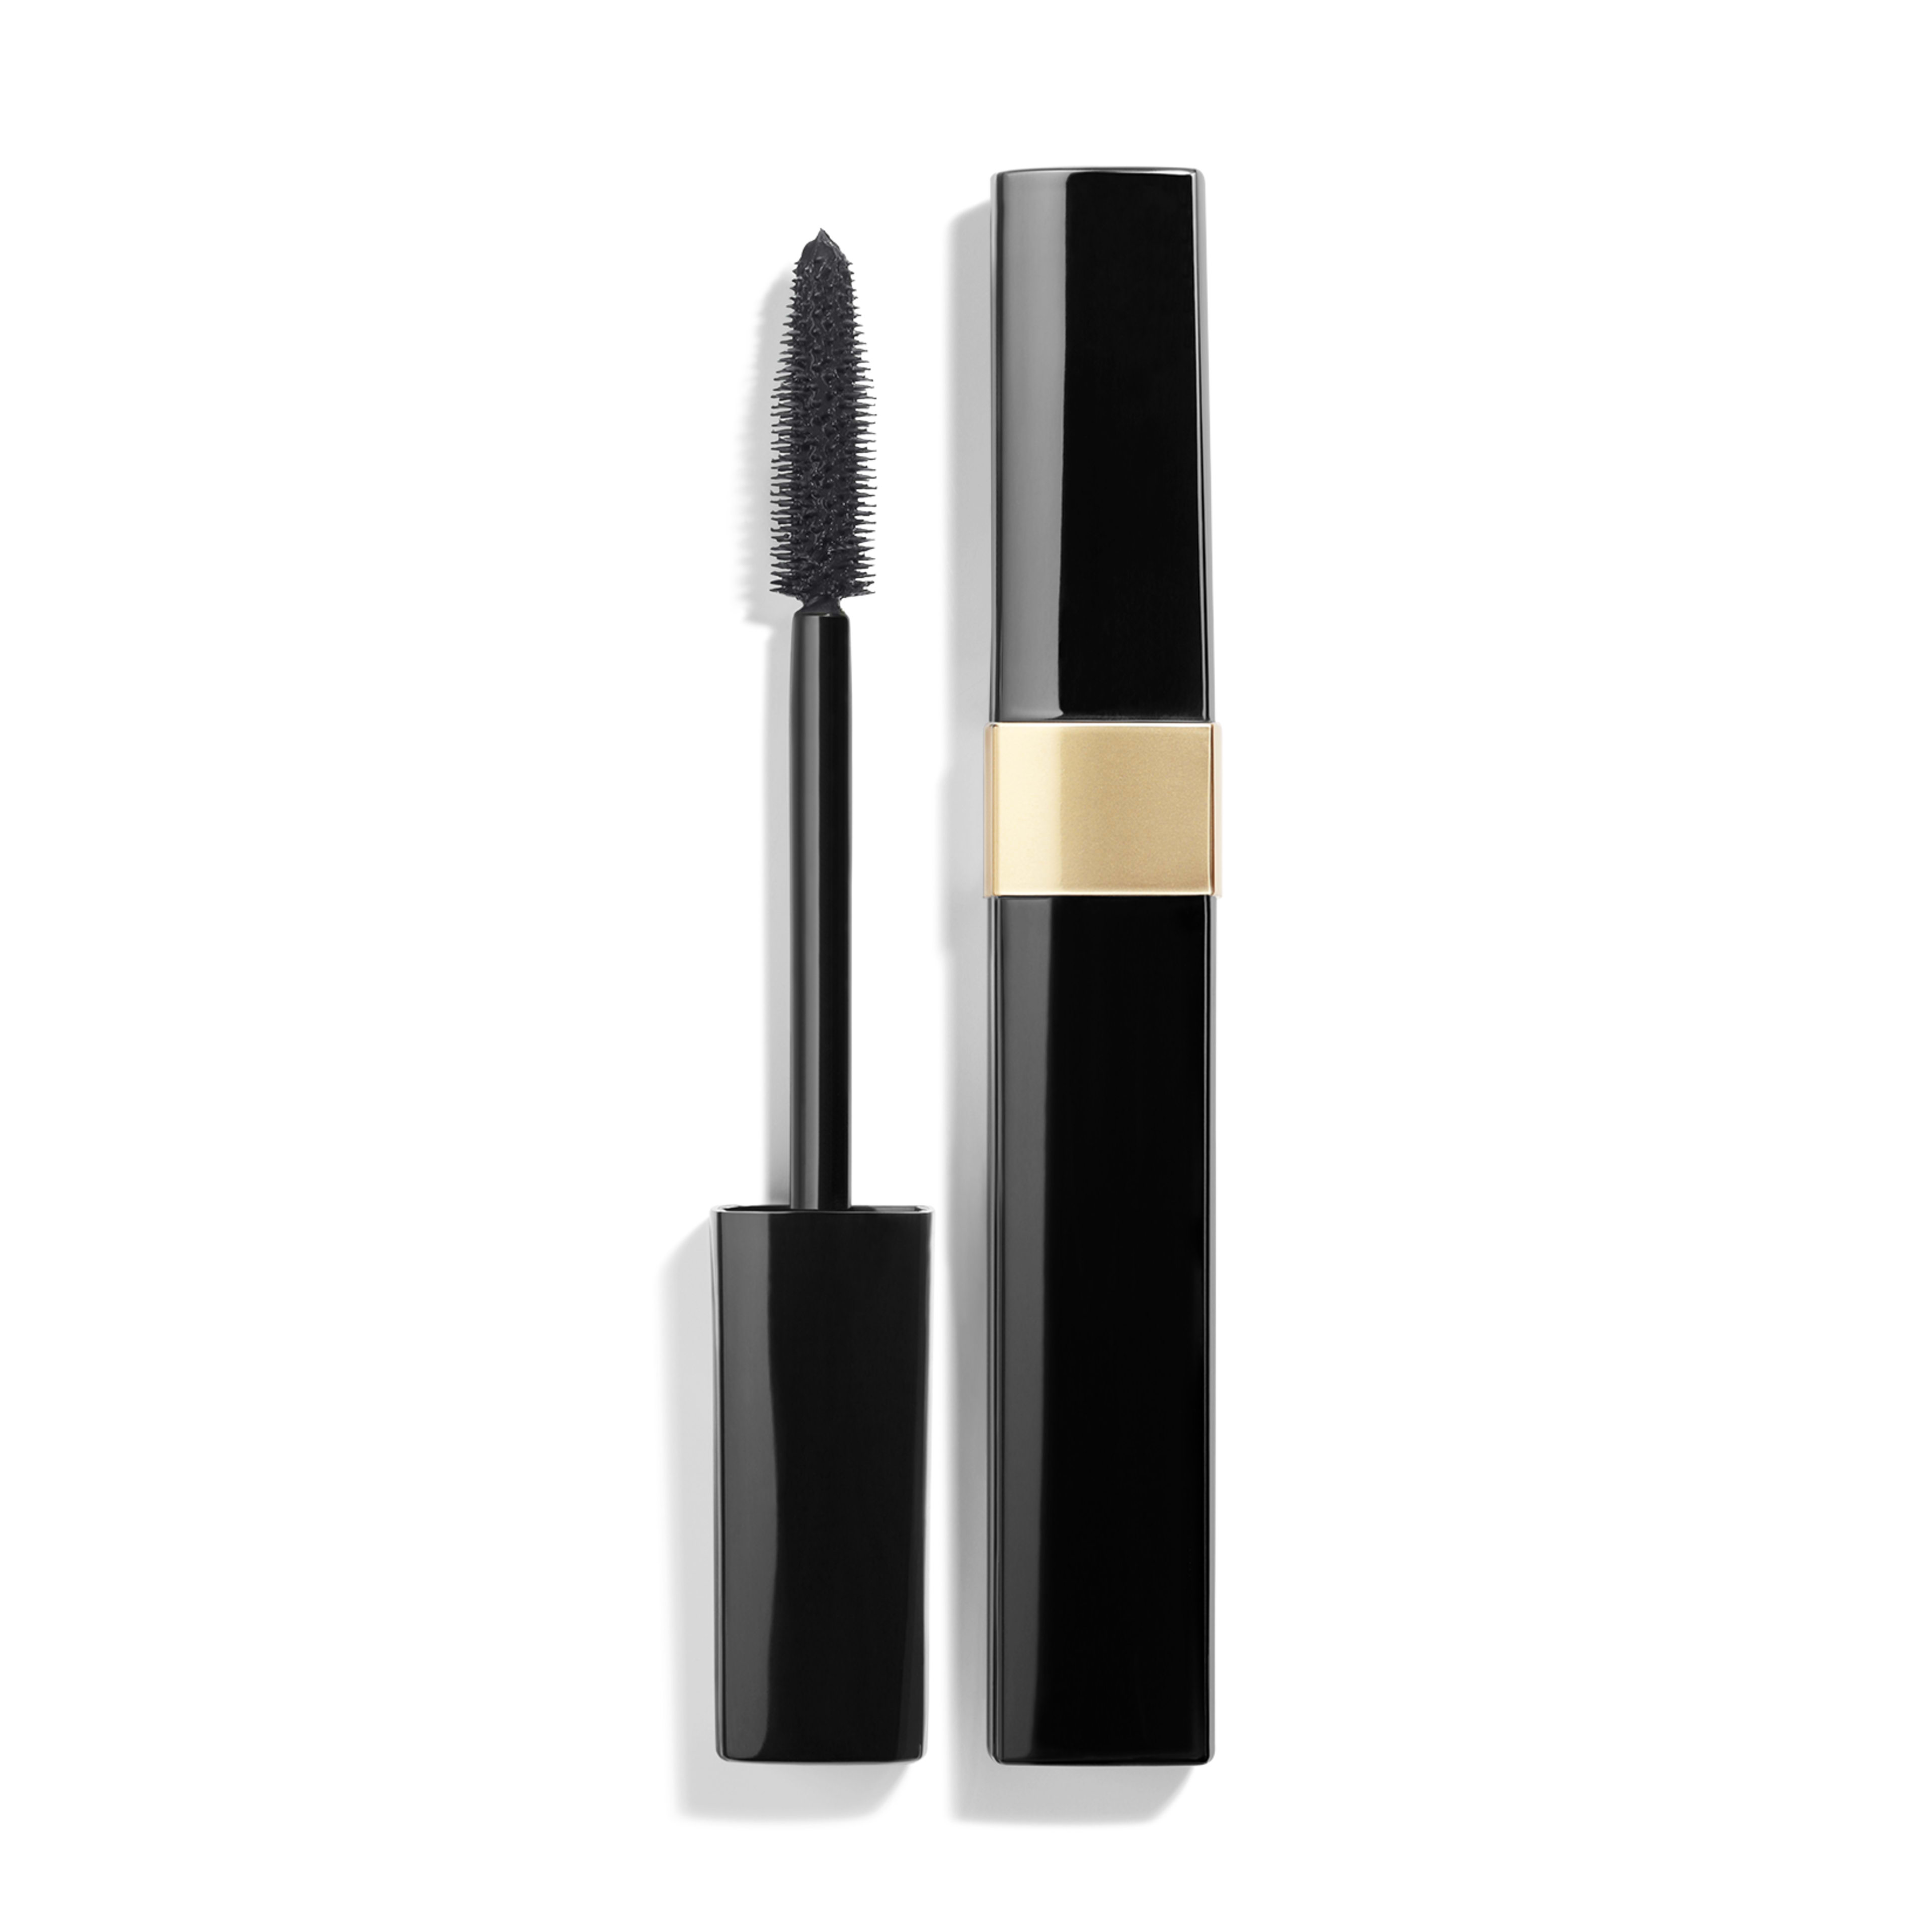 INIMITABLE WATERPROOF - makeup - 5g - Вид по умолчанию